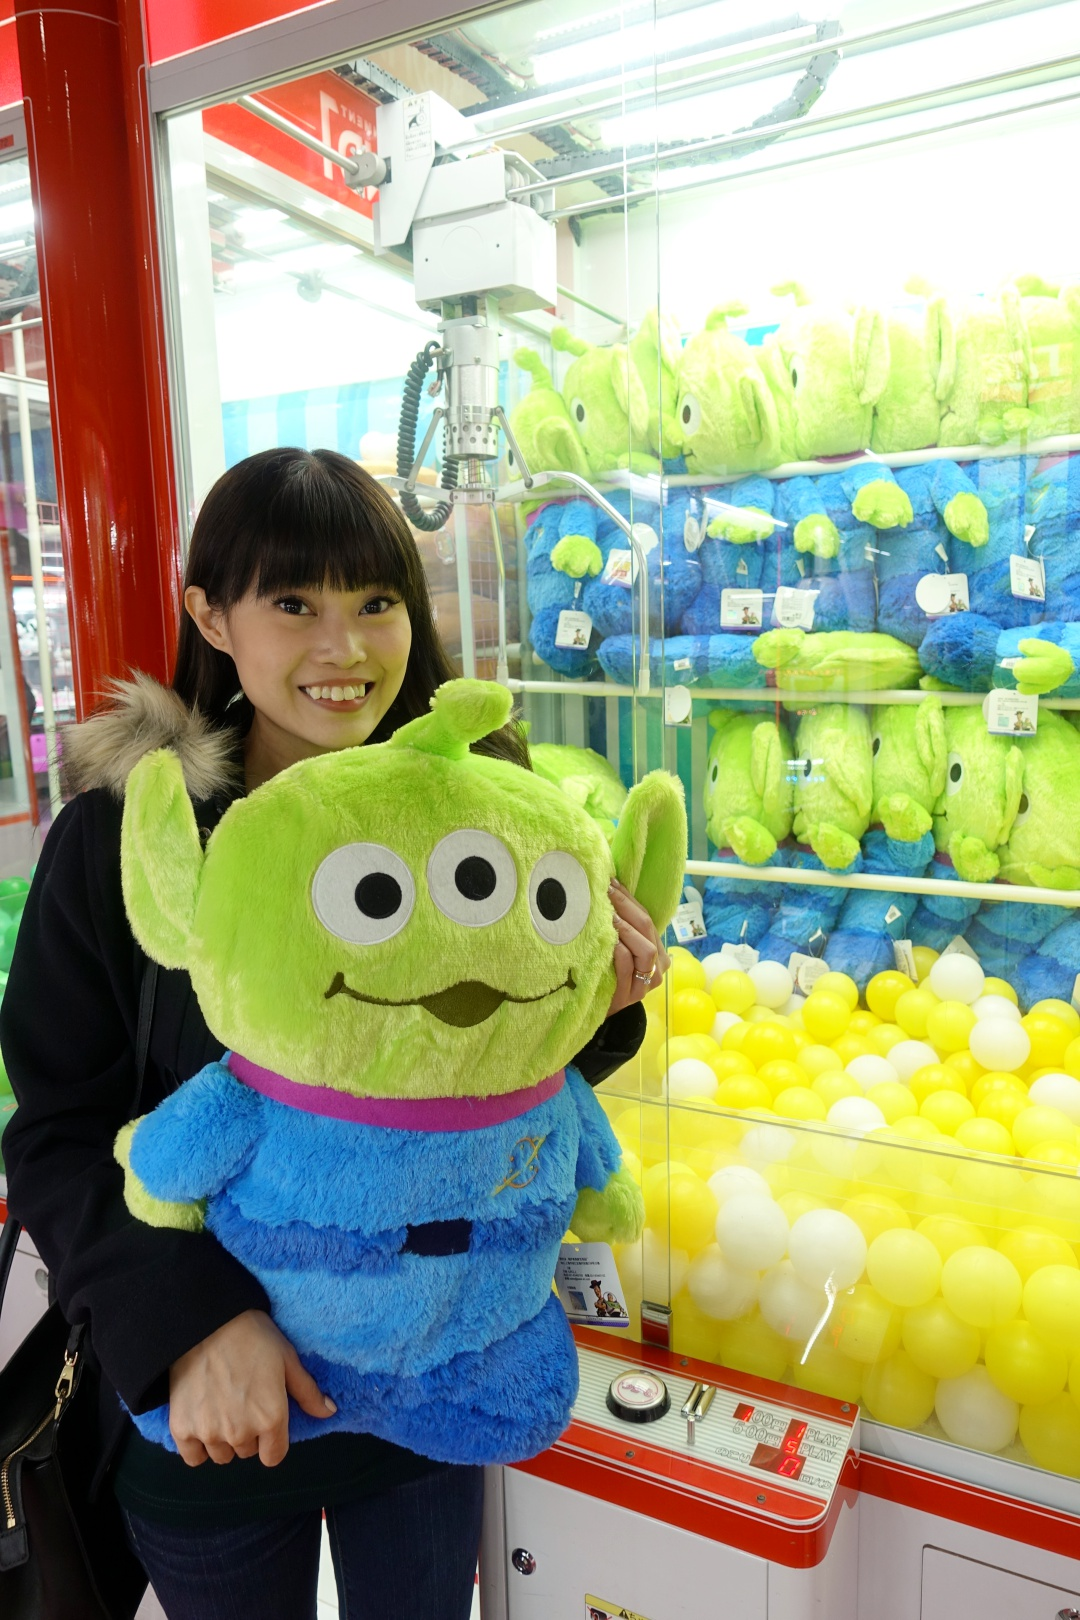 2018 Osaka Japan Arcade Claw Machine | Toy Story Three Eye Alien | joanne-khoo.com